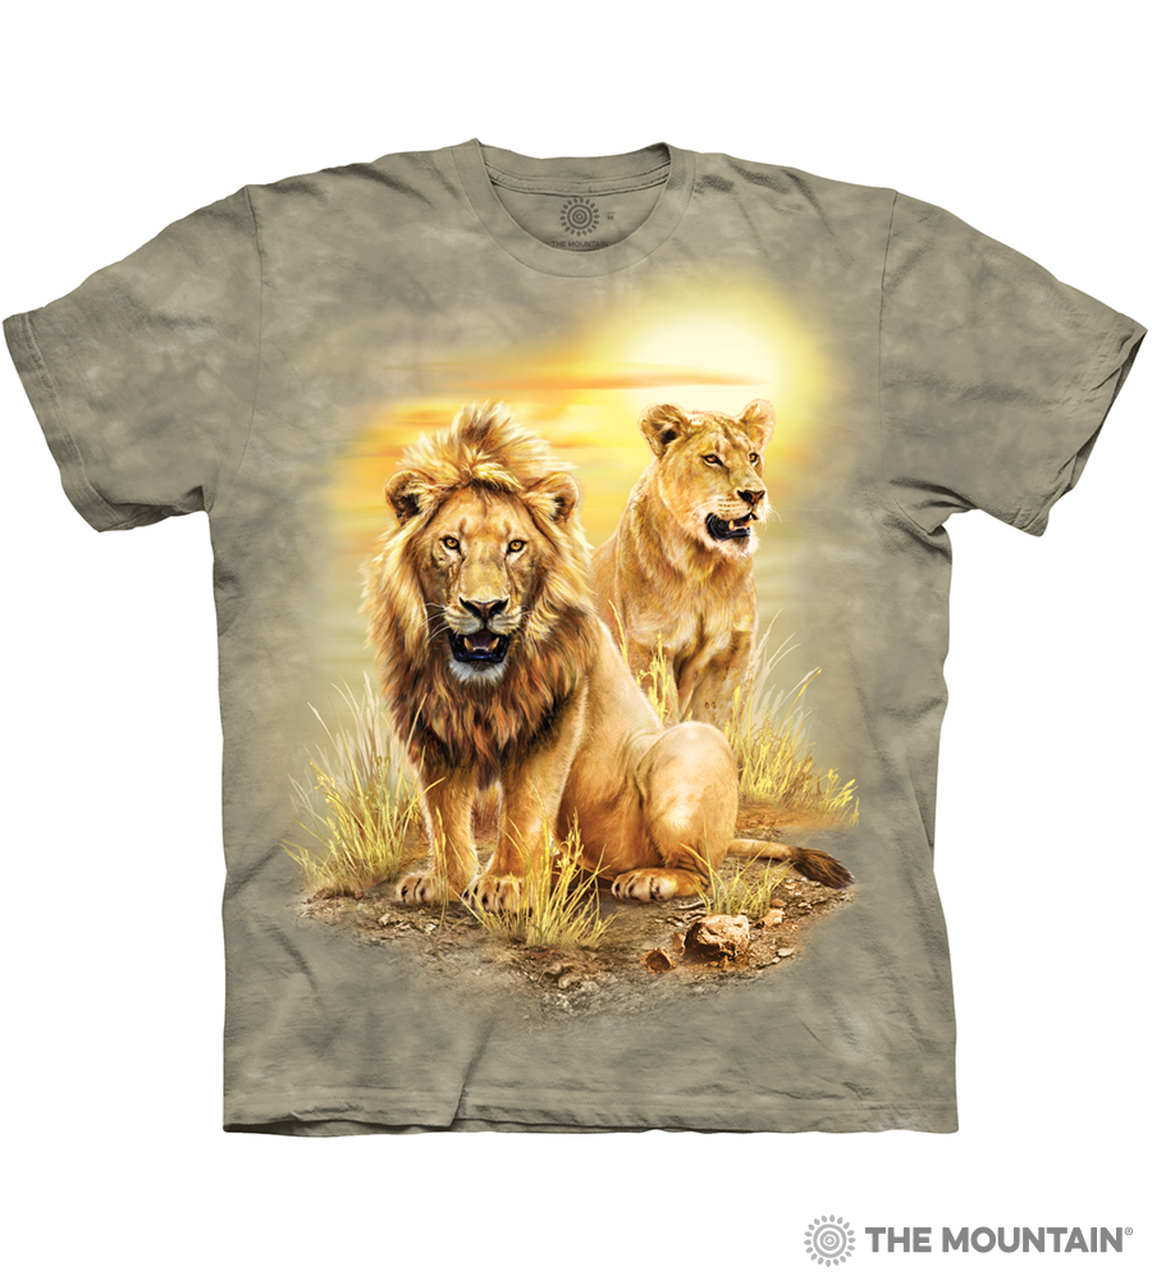 Lion Warrior Big Cats T Shirt Adult Unisex The Mountain